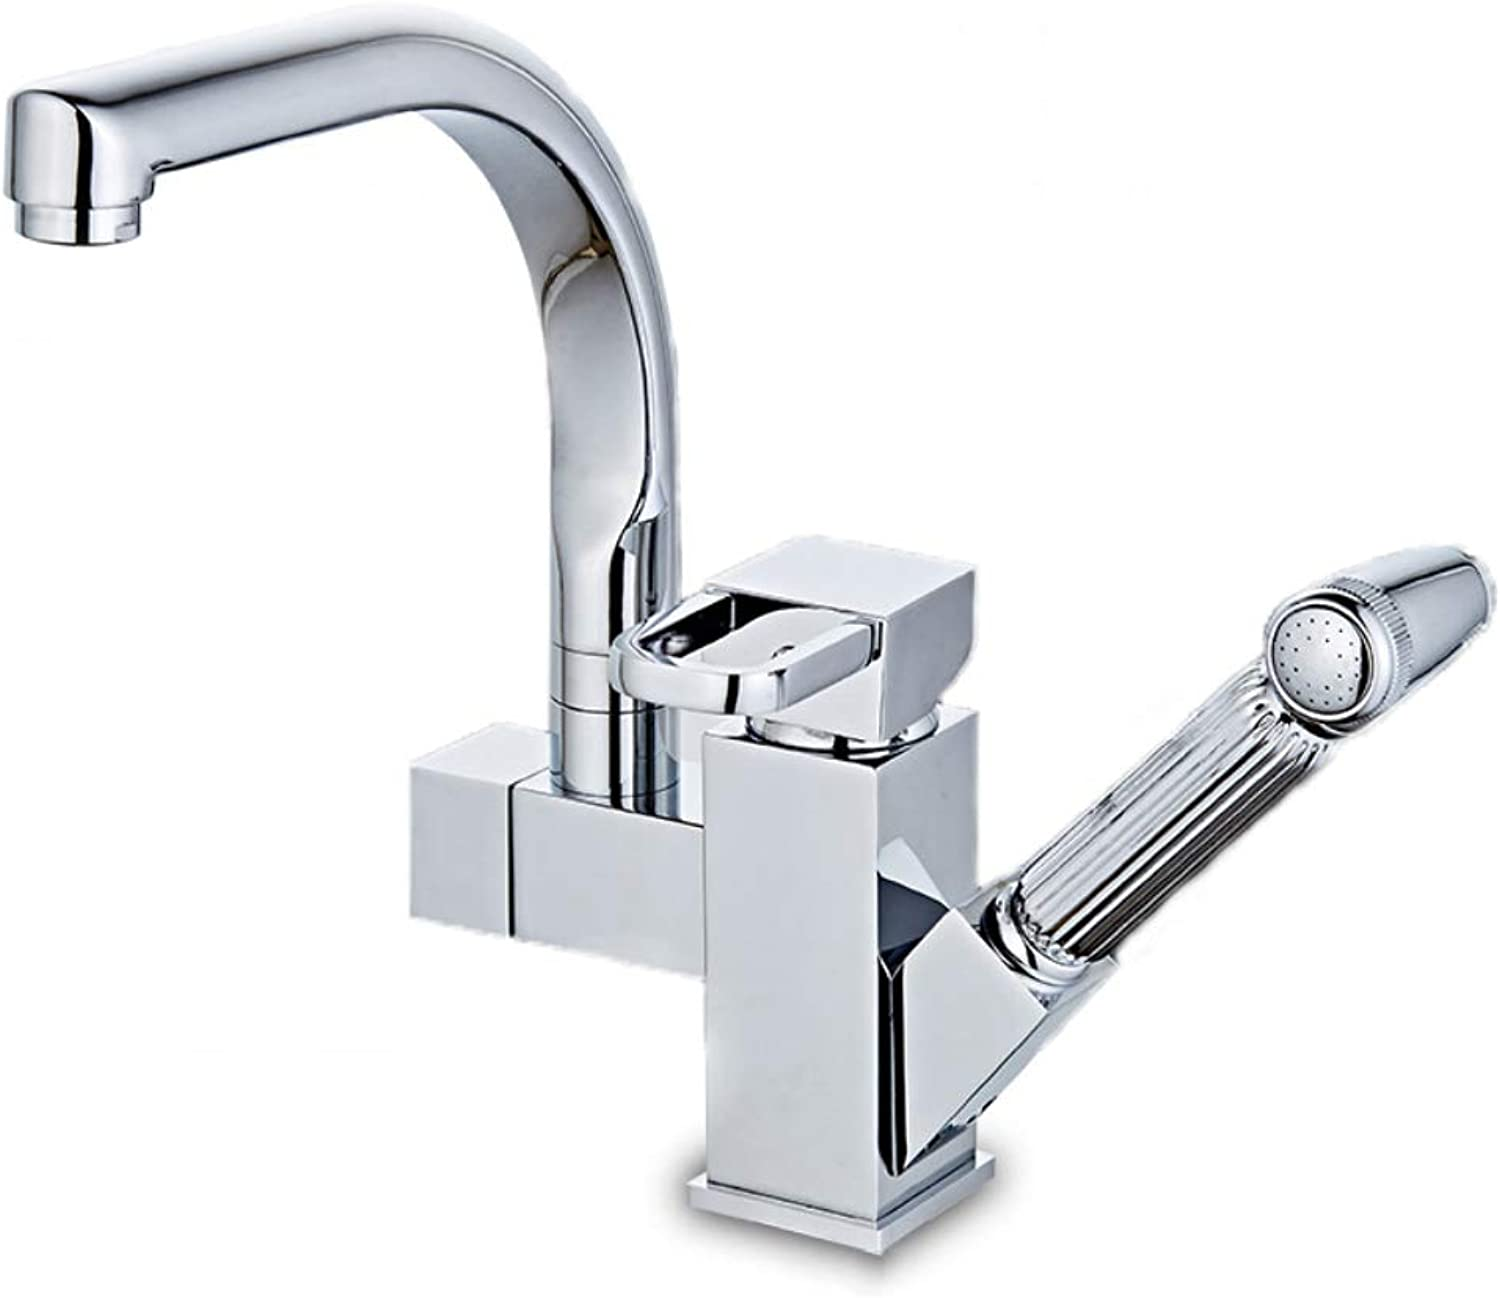 BILLY'S HOME Single Handle Faucet, High Arc Chrome Finish Pull out Kitchen Faucet, 360° redation Pullable Contemporary Style